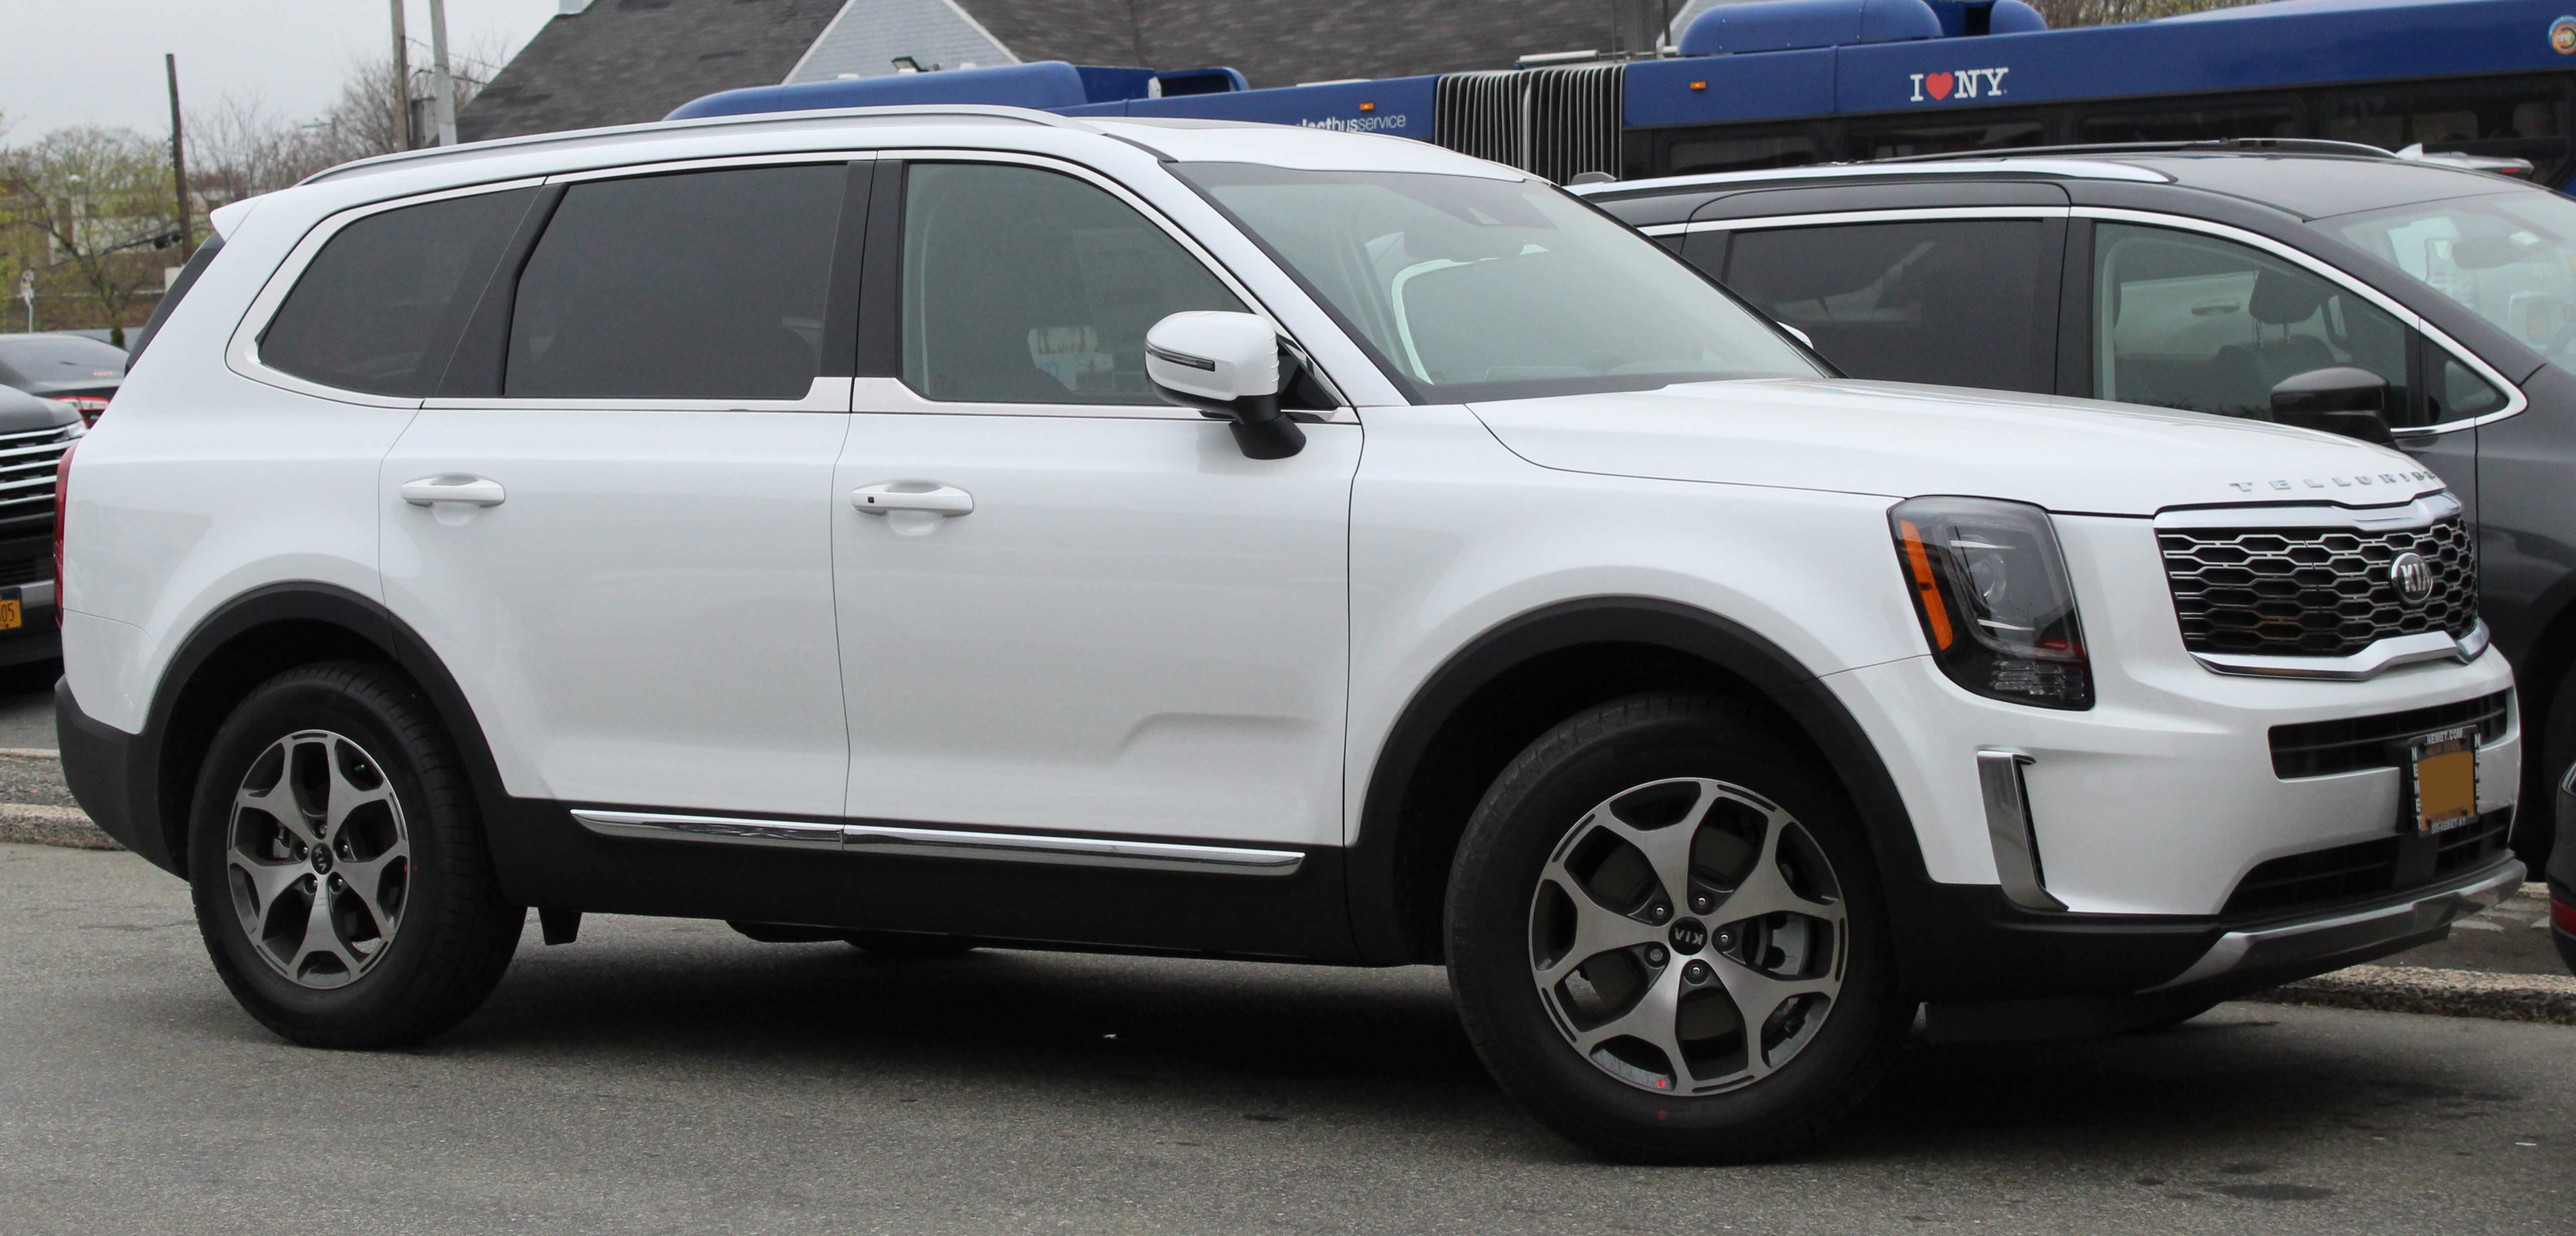 47 All New 2020 Kia Telluride Bolt Pattern Images